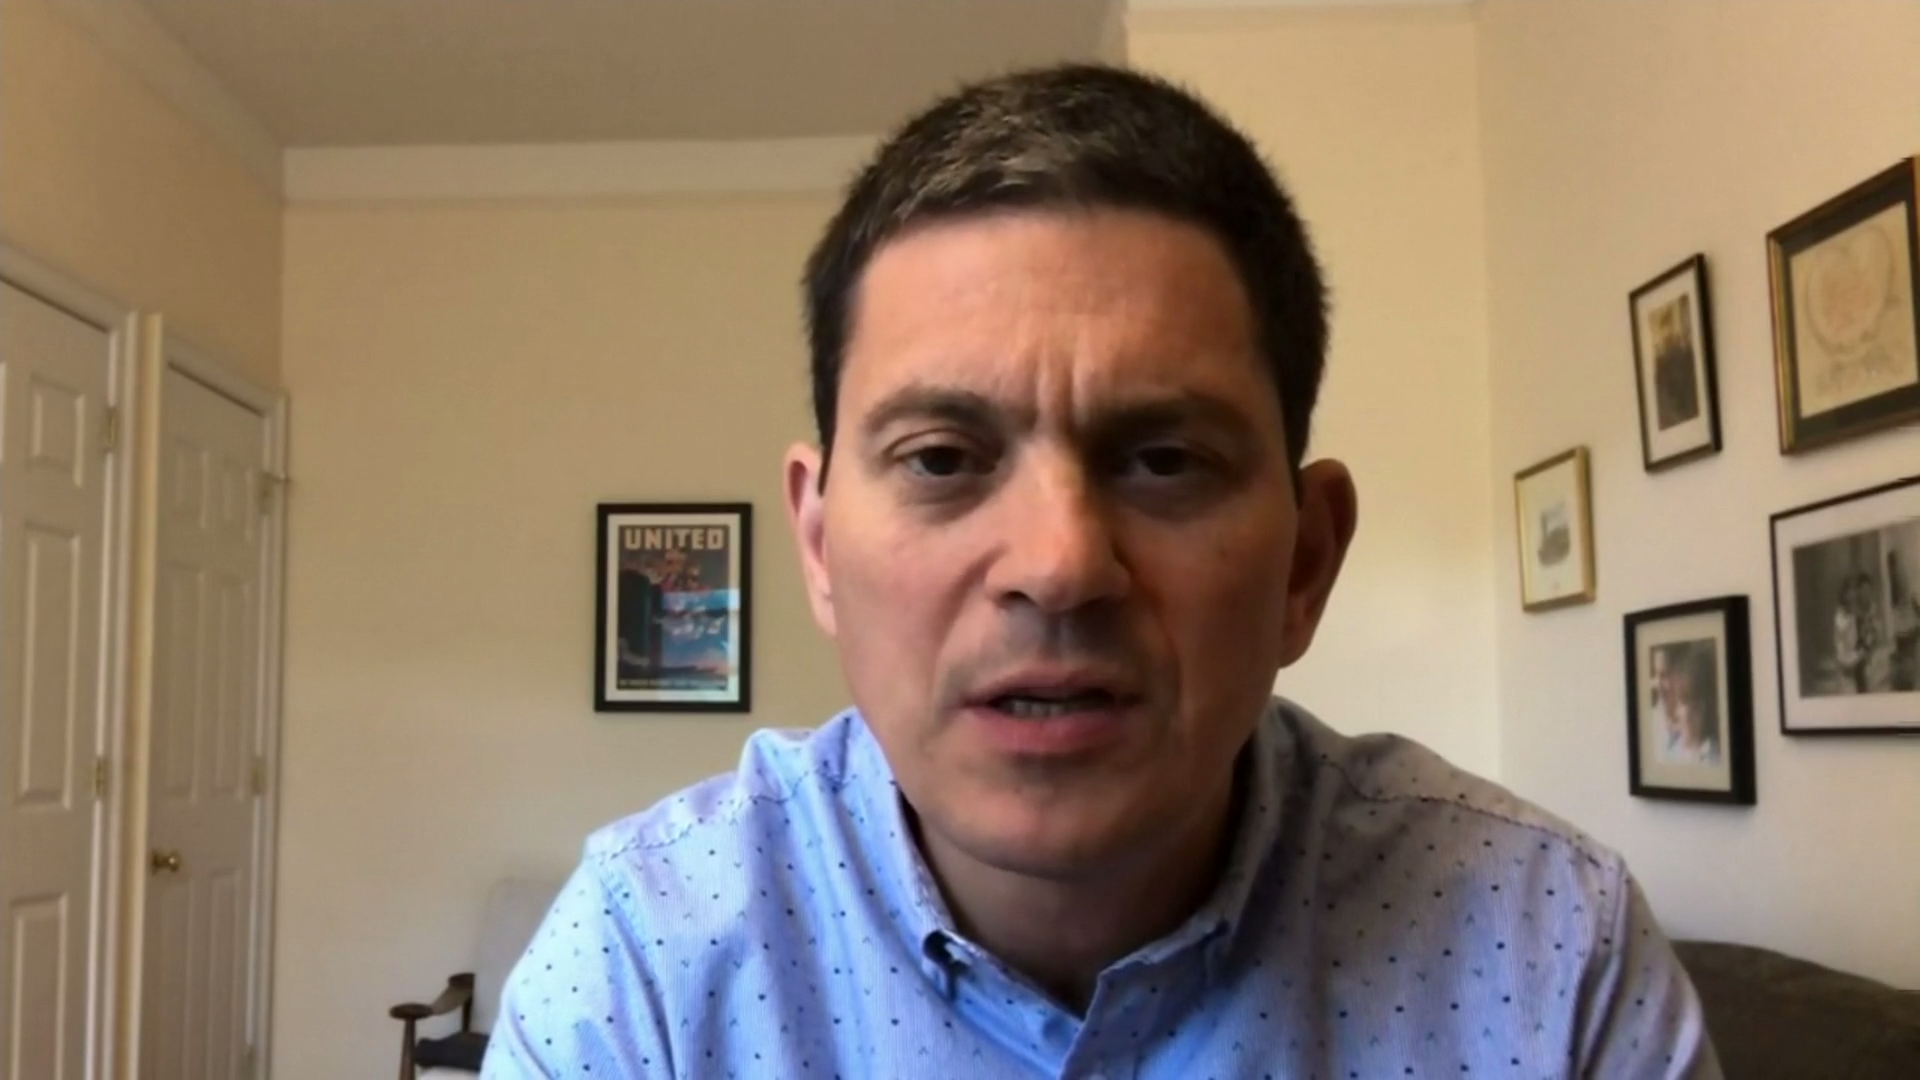 President of International Rescue Committee David Miliband on the hundreds of thousands displaced by Turkey-Syria conflict